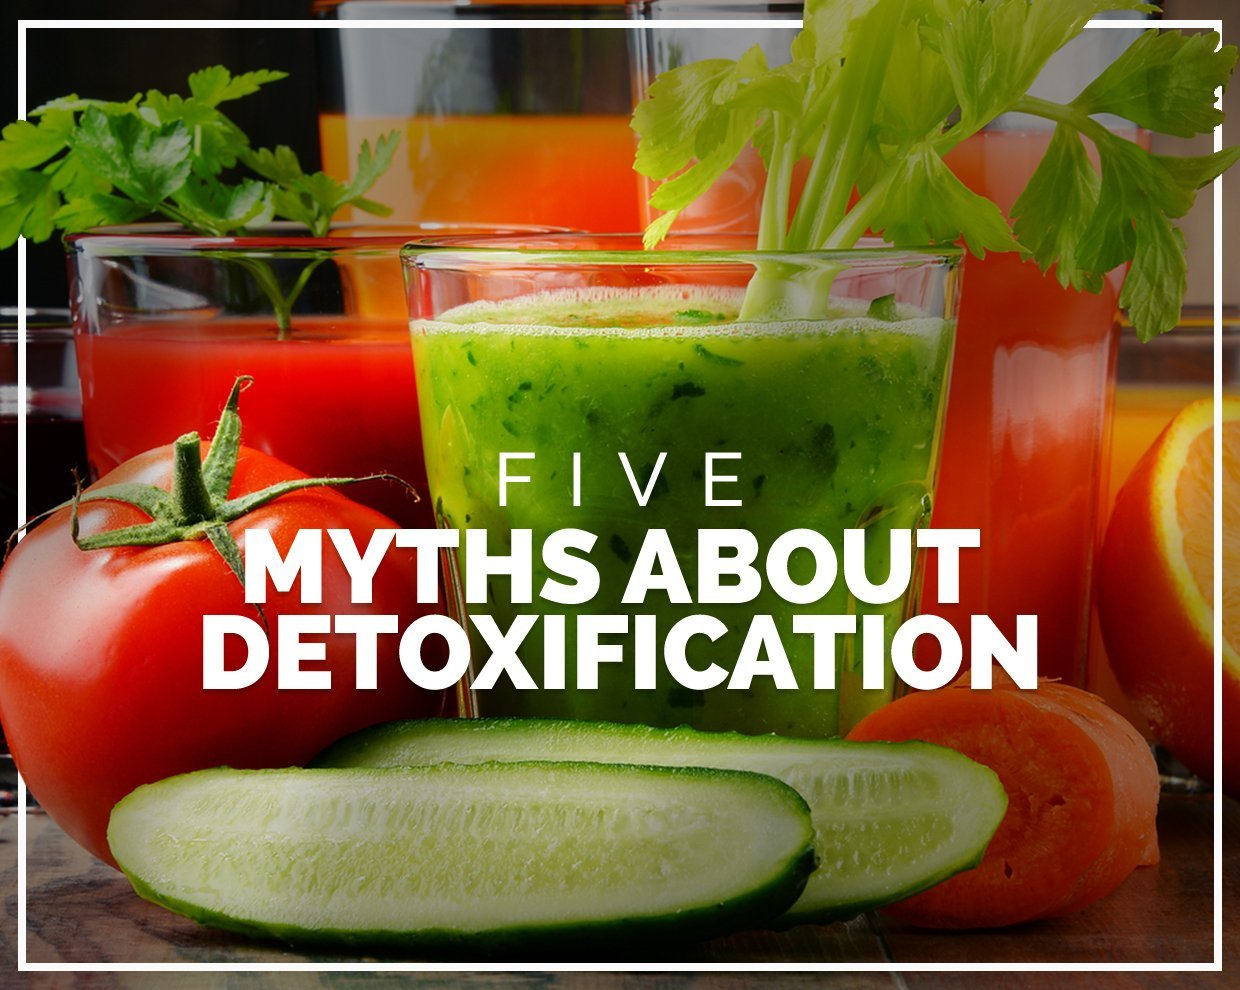 5 myths about detoxification